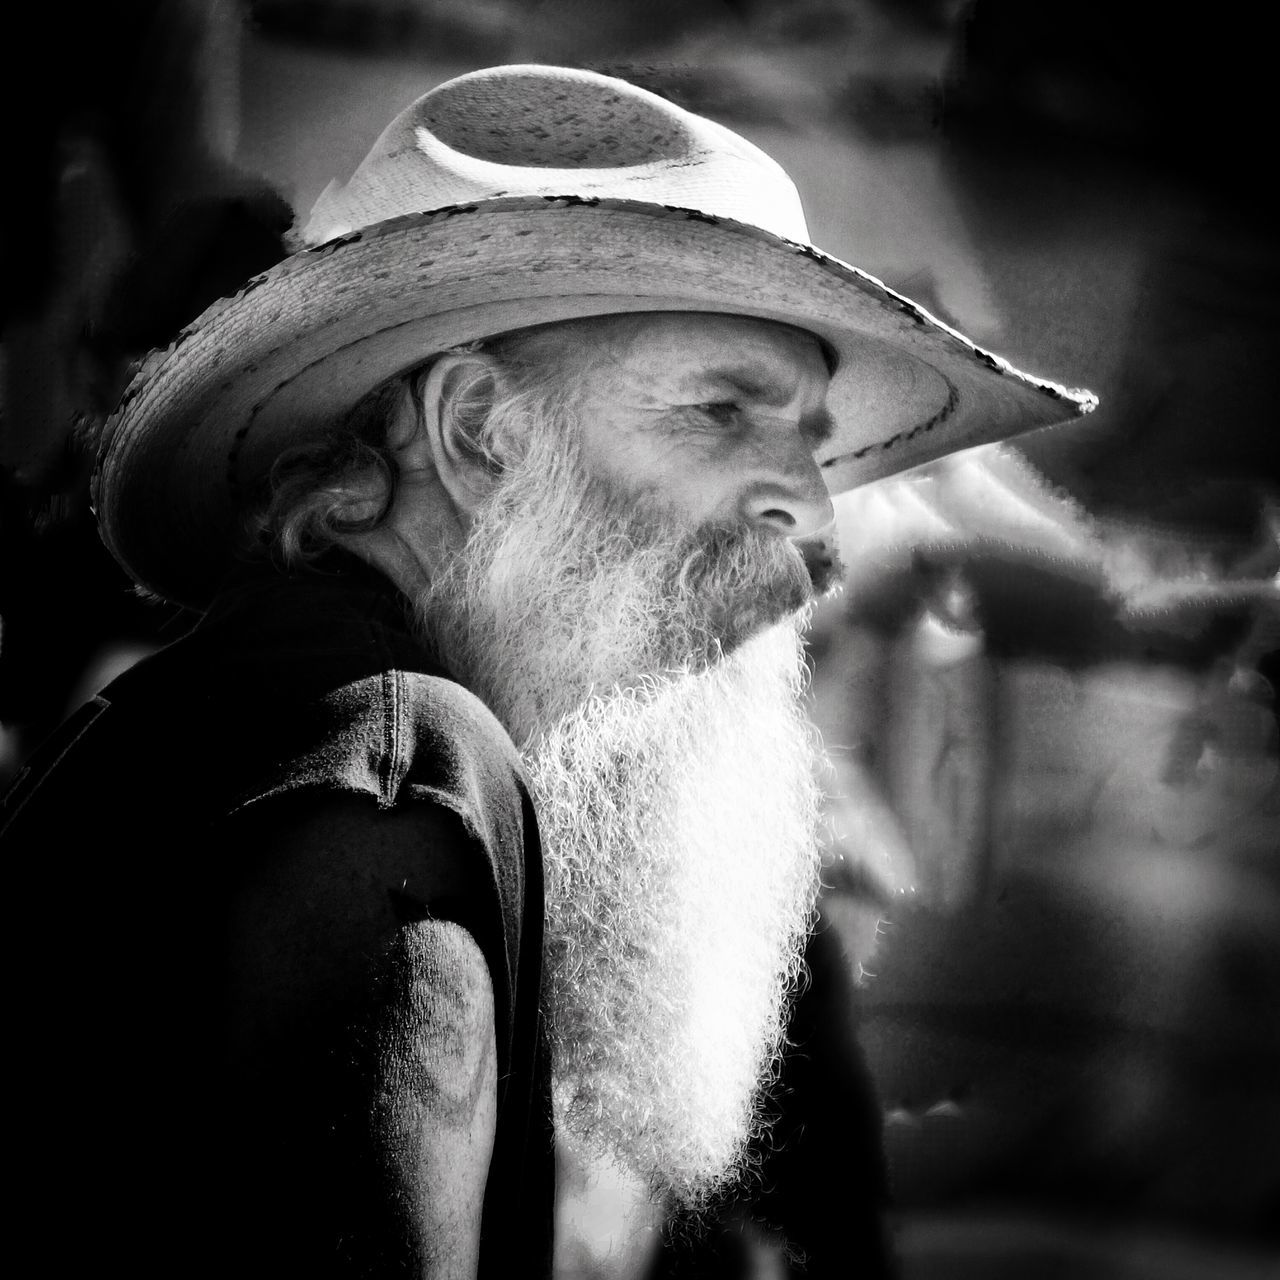 real people, hat, one person, senior adult, beard, men, outdoors, lifestyles, day, portrait, close-up